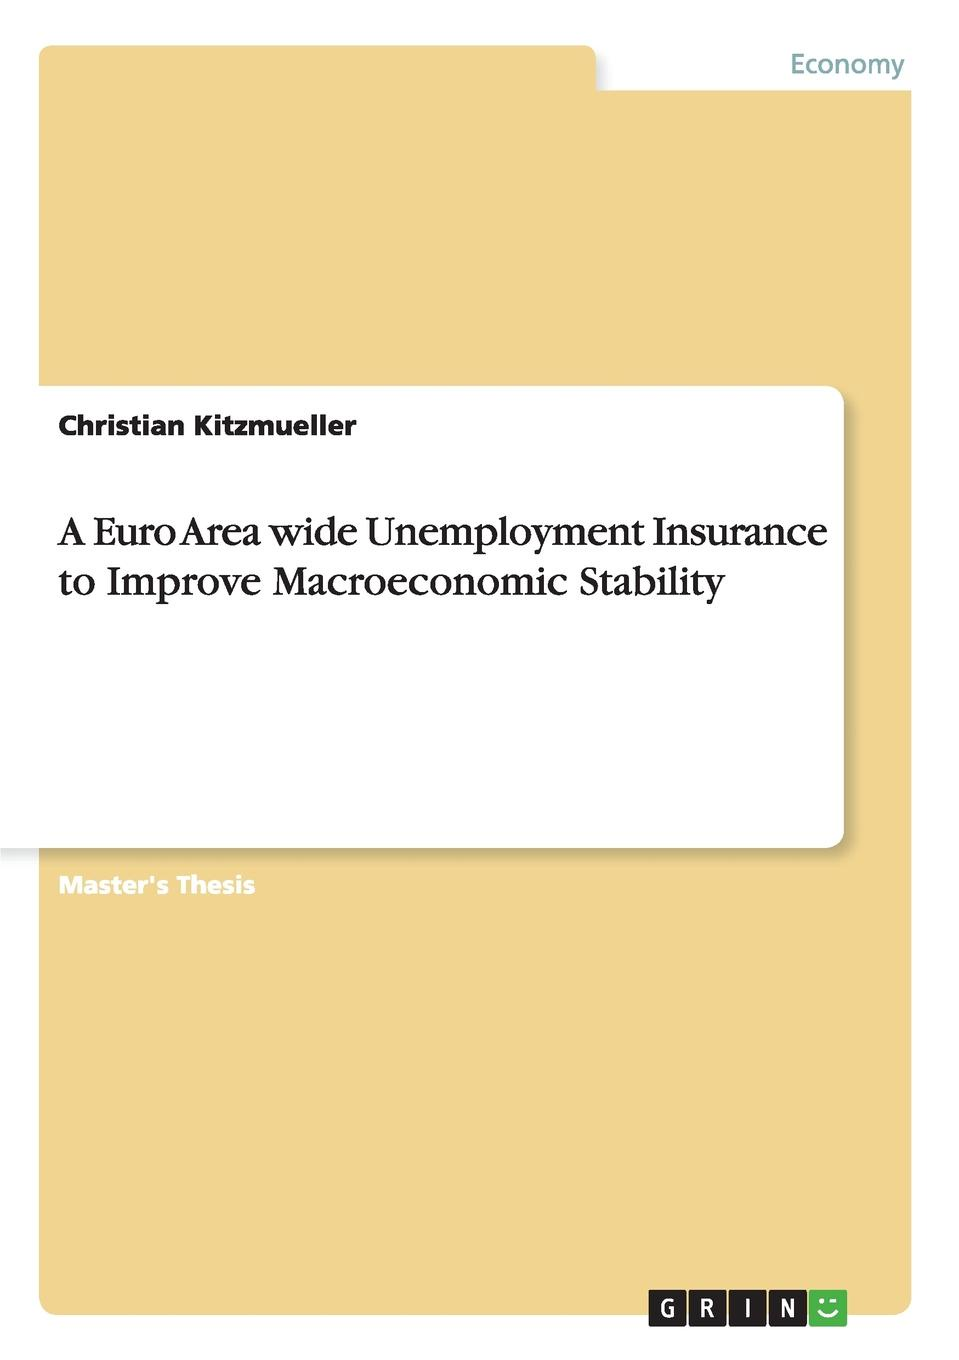 Christian Kitzmueller A Euro Area wide Unemployment Insurance to Improve Macroeconomic Stability optimal unemployment insurance in a job search